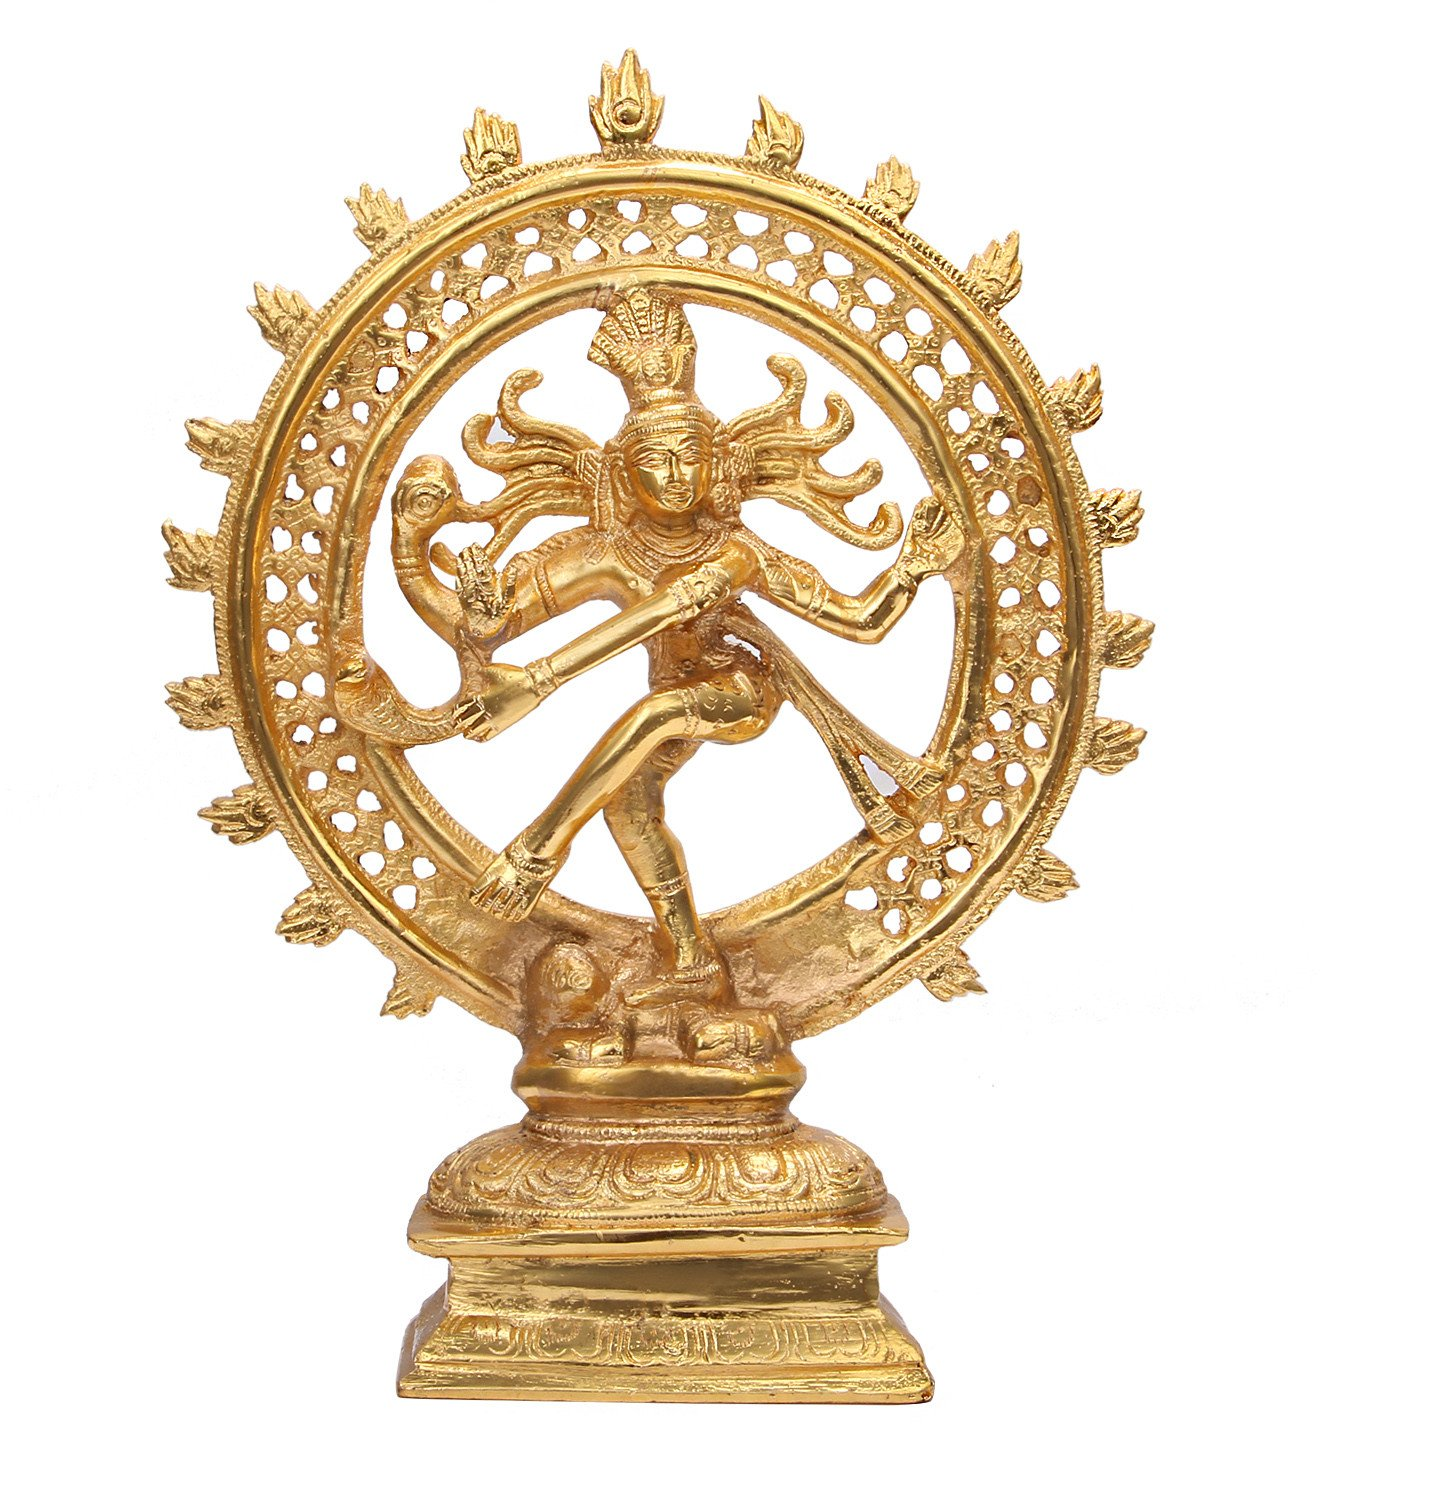 Nataraj symbol of the dancing lord shiva pujabooking nataraj symbol of the dancing lord shiva biocorpaavc Image collections